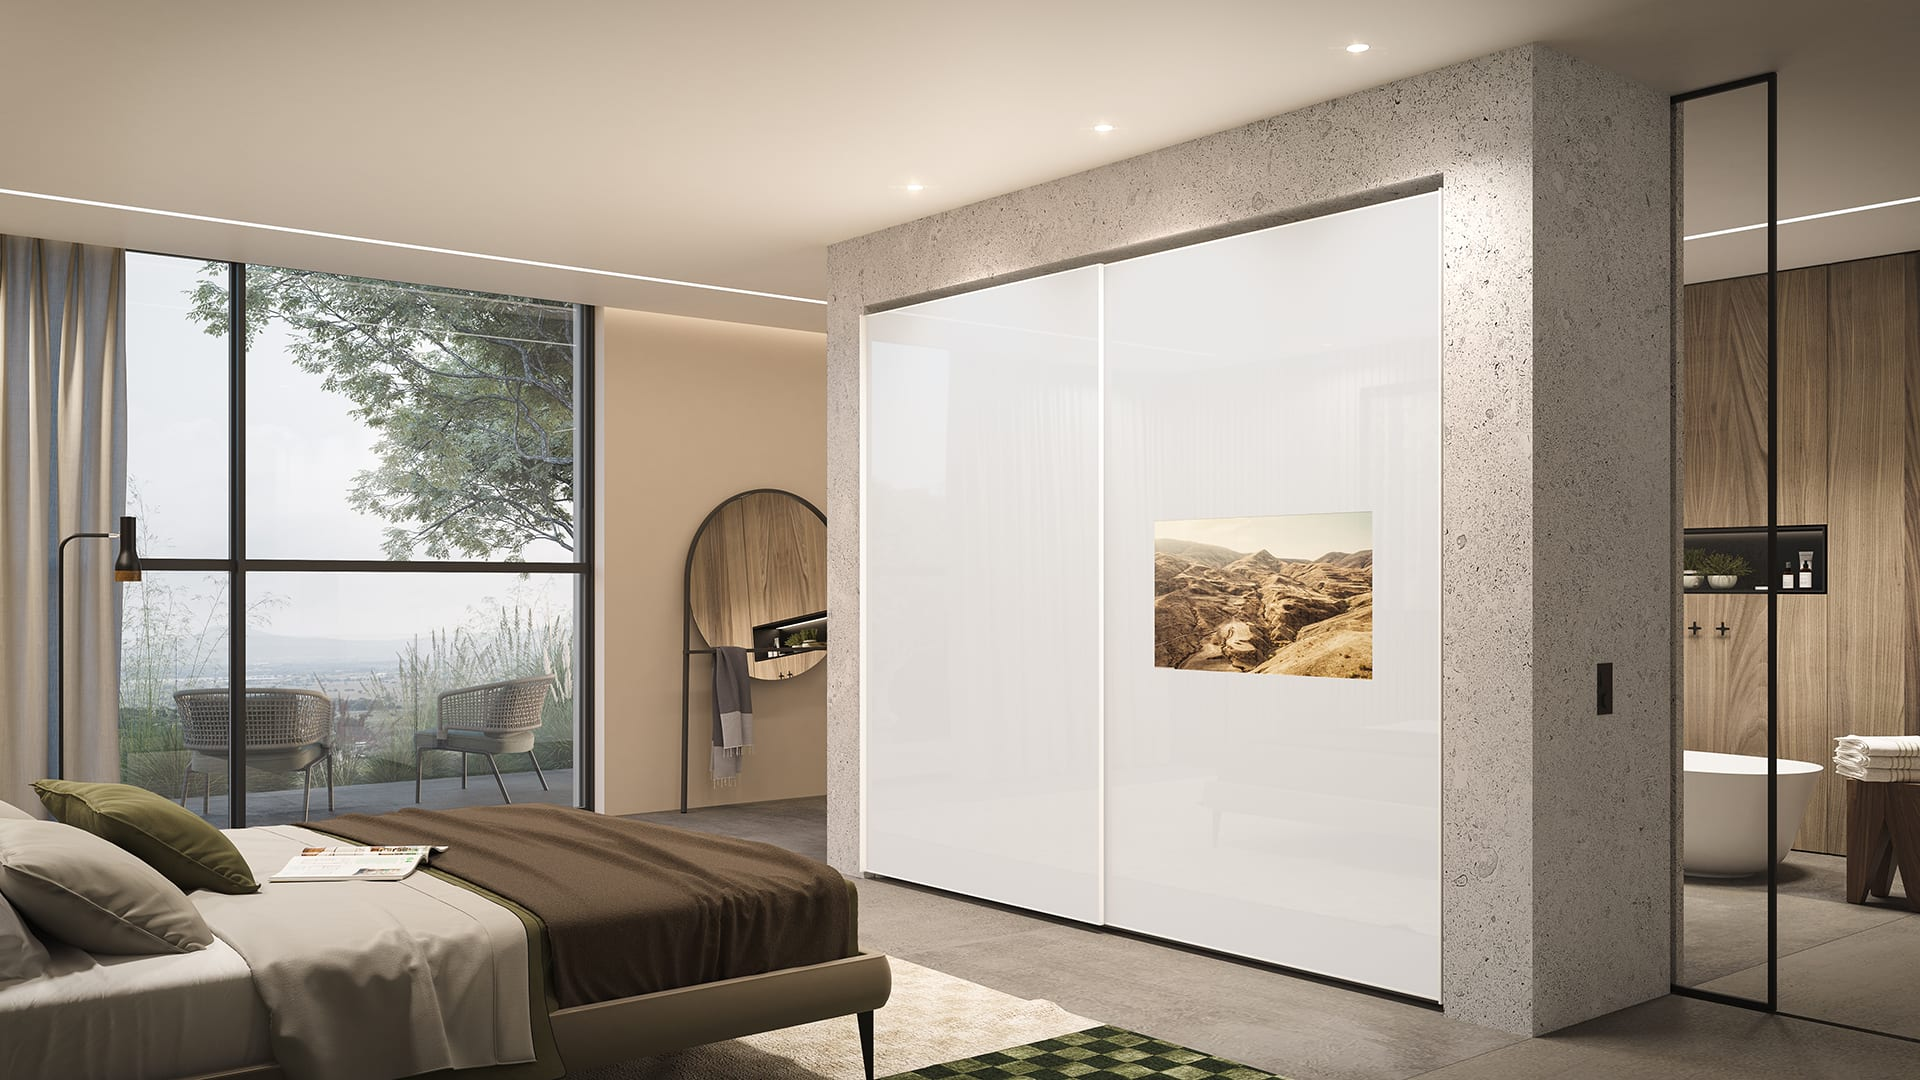 Maayan-Golan_Architectural-Visualization_product-visualization_AGAM-cloests_sliding-door-tv-closet_04